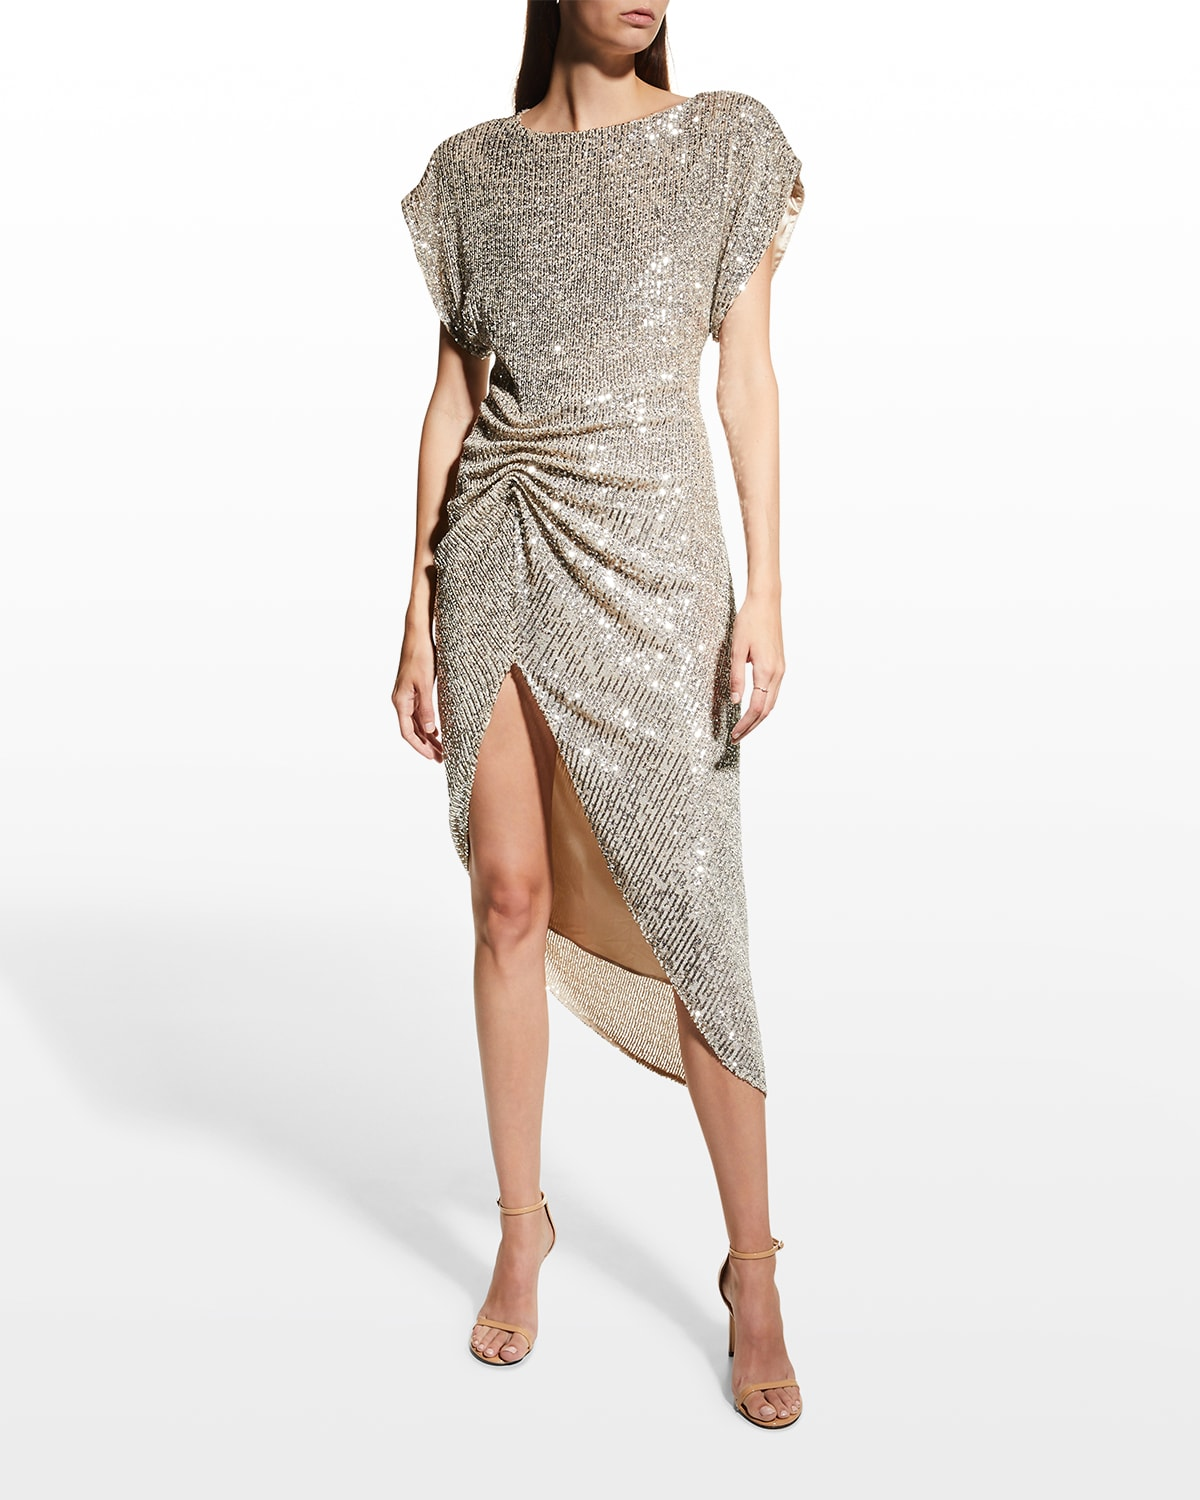 Bercot Sequined Cocktail Dress